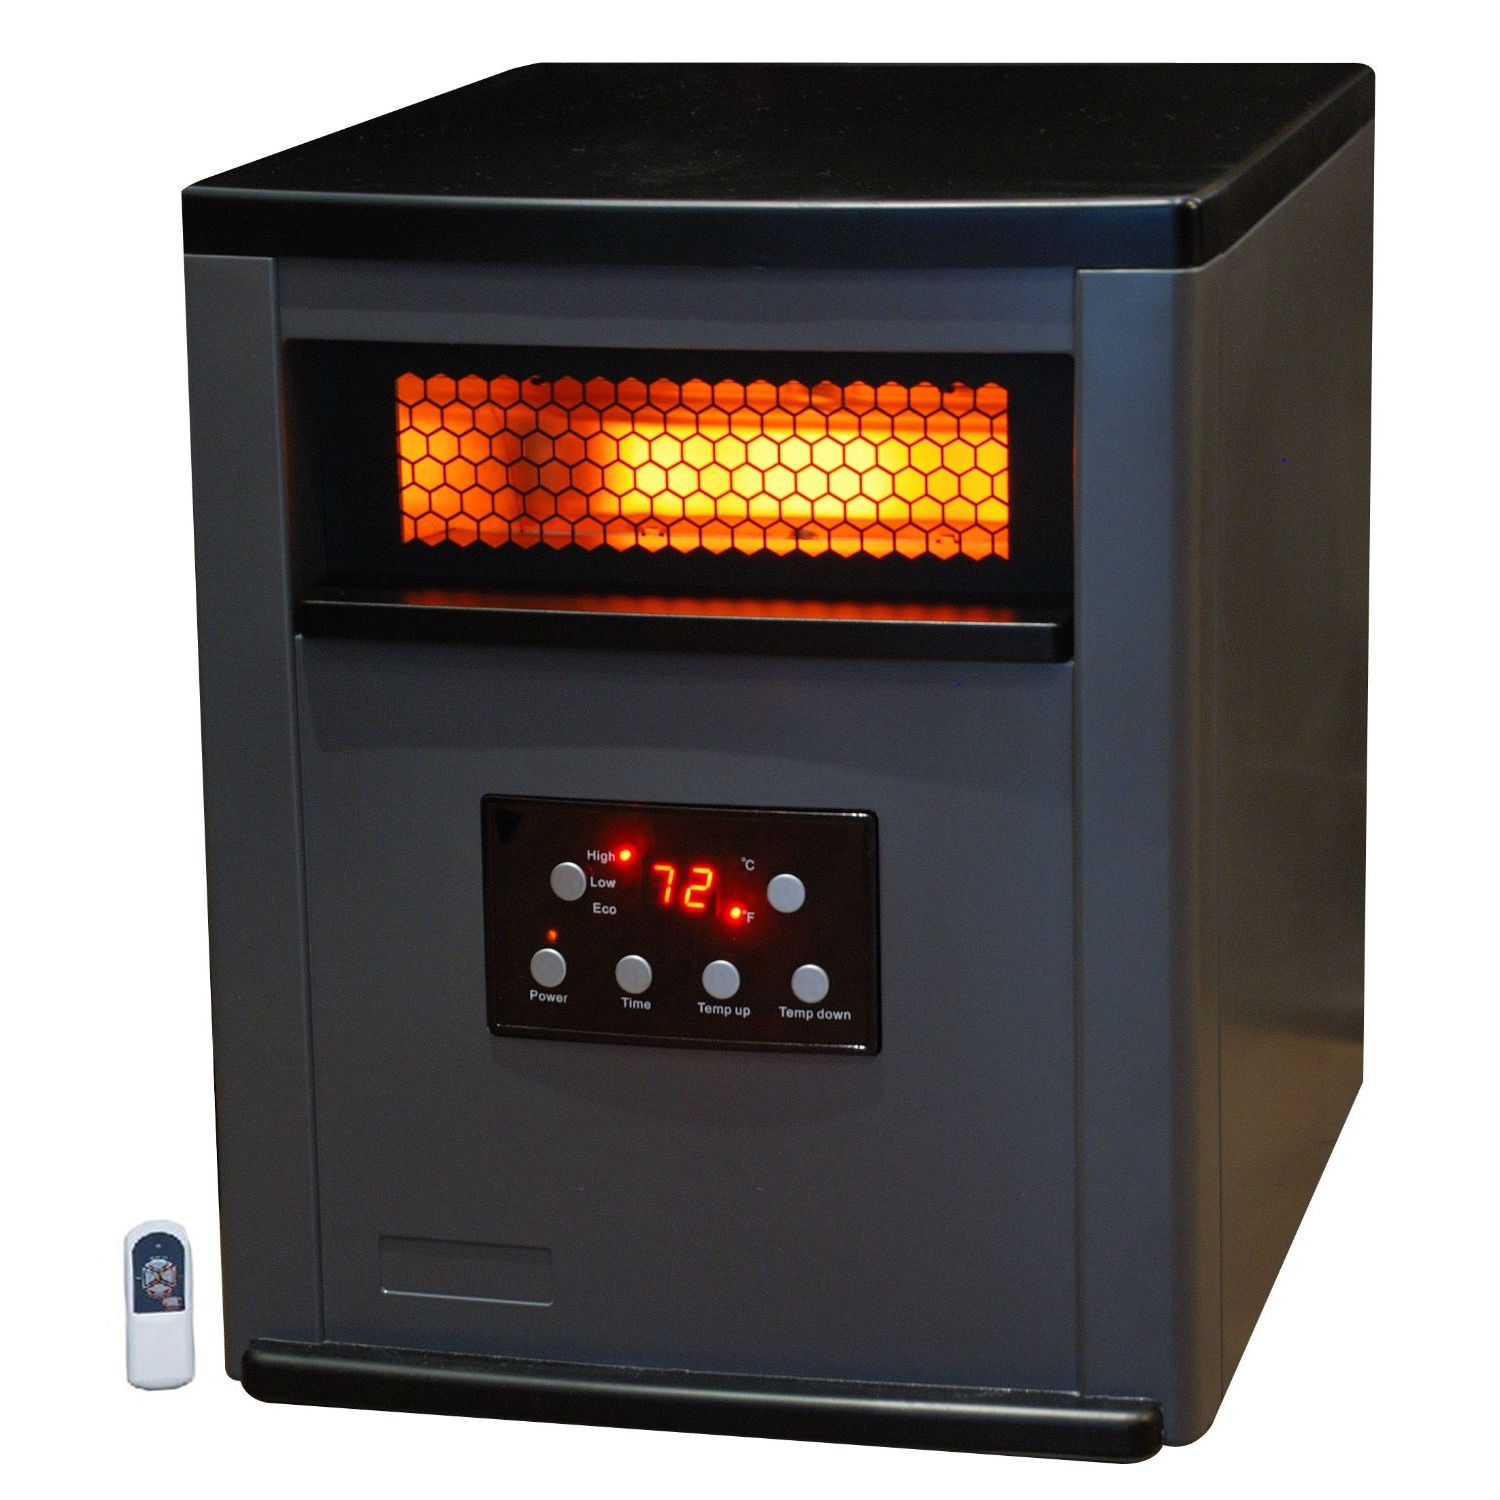 Infrared Space Heater w/ Remote 5,200 BTUs Heat Two Tone Fireproof Cabinet, LBIH984155 :  This Infrared Space Heater w/ Remote 5,200 BTUs Heat Two Tone Fireproof Cabinet offers you safe &healthy heat for a room area of up to 1200 square feet. This offers ultra-efficient & safe heat at less cost than other heating systems. This heater and features 6 of our standard quartz infrared elements there is also a Lifetime Air Filter. In house testing shows our heaters are 38% more efficient then forced air electric, 66% more efficient then propane and 45% more efficient then electric baseboard yet this Infrared Heater only uses up to 1500 watts which is no more than a common hair dryer! There are 3 energy savings settings including an Eco Setting that will heat smaller areas to 68 degrees using only 500 watts. The heater is surrounded by our stylish two tone gray & black fireproof cabinet that is cool to the touch. E Z Glide casters will easily move from the heater from room to room. This amazing heater also includes a new larger remote control to operate the Digital Thermostat and Dual Timer settings that can be used to turn the unit on in up to 12 Hours ahead so your room is warm when you come home or turn off in up to 12 hours.